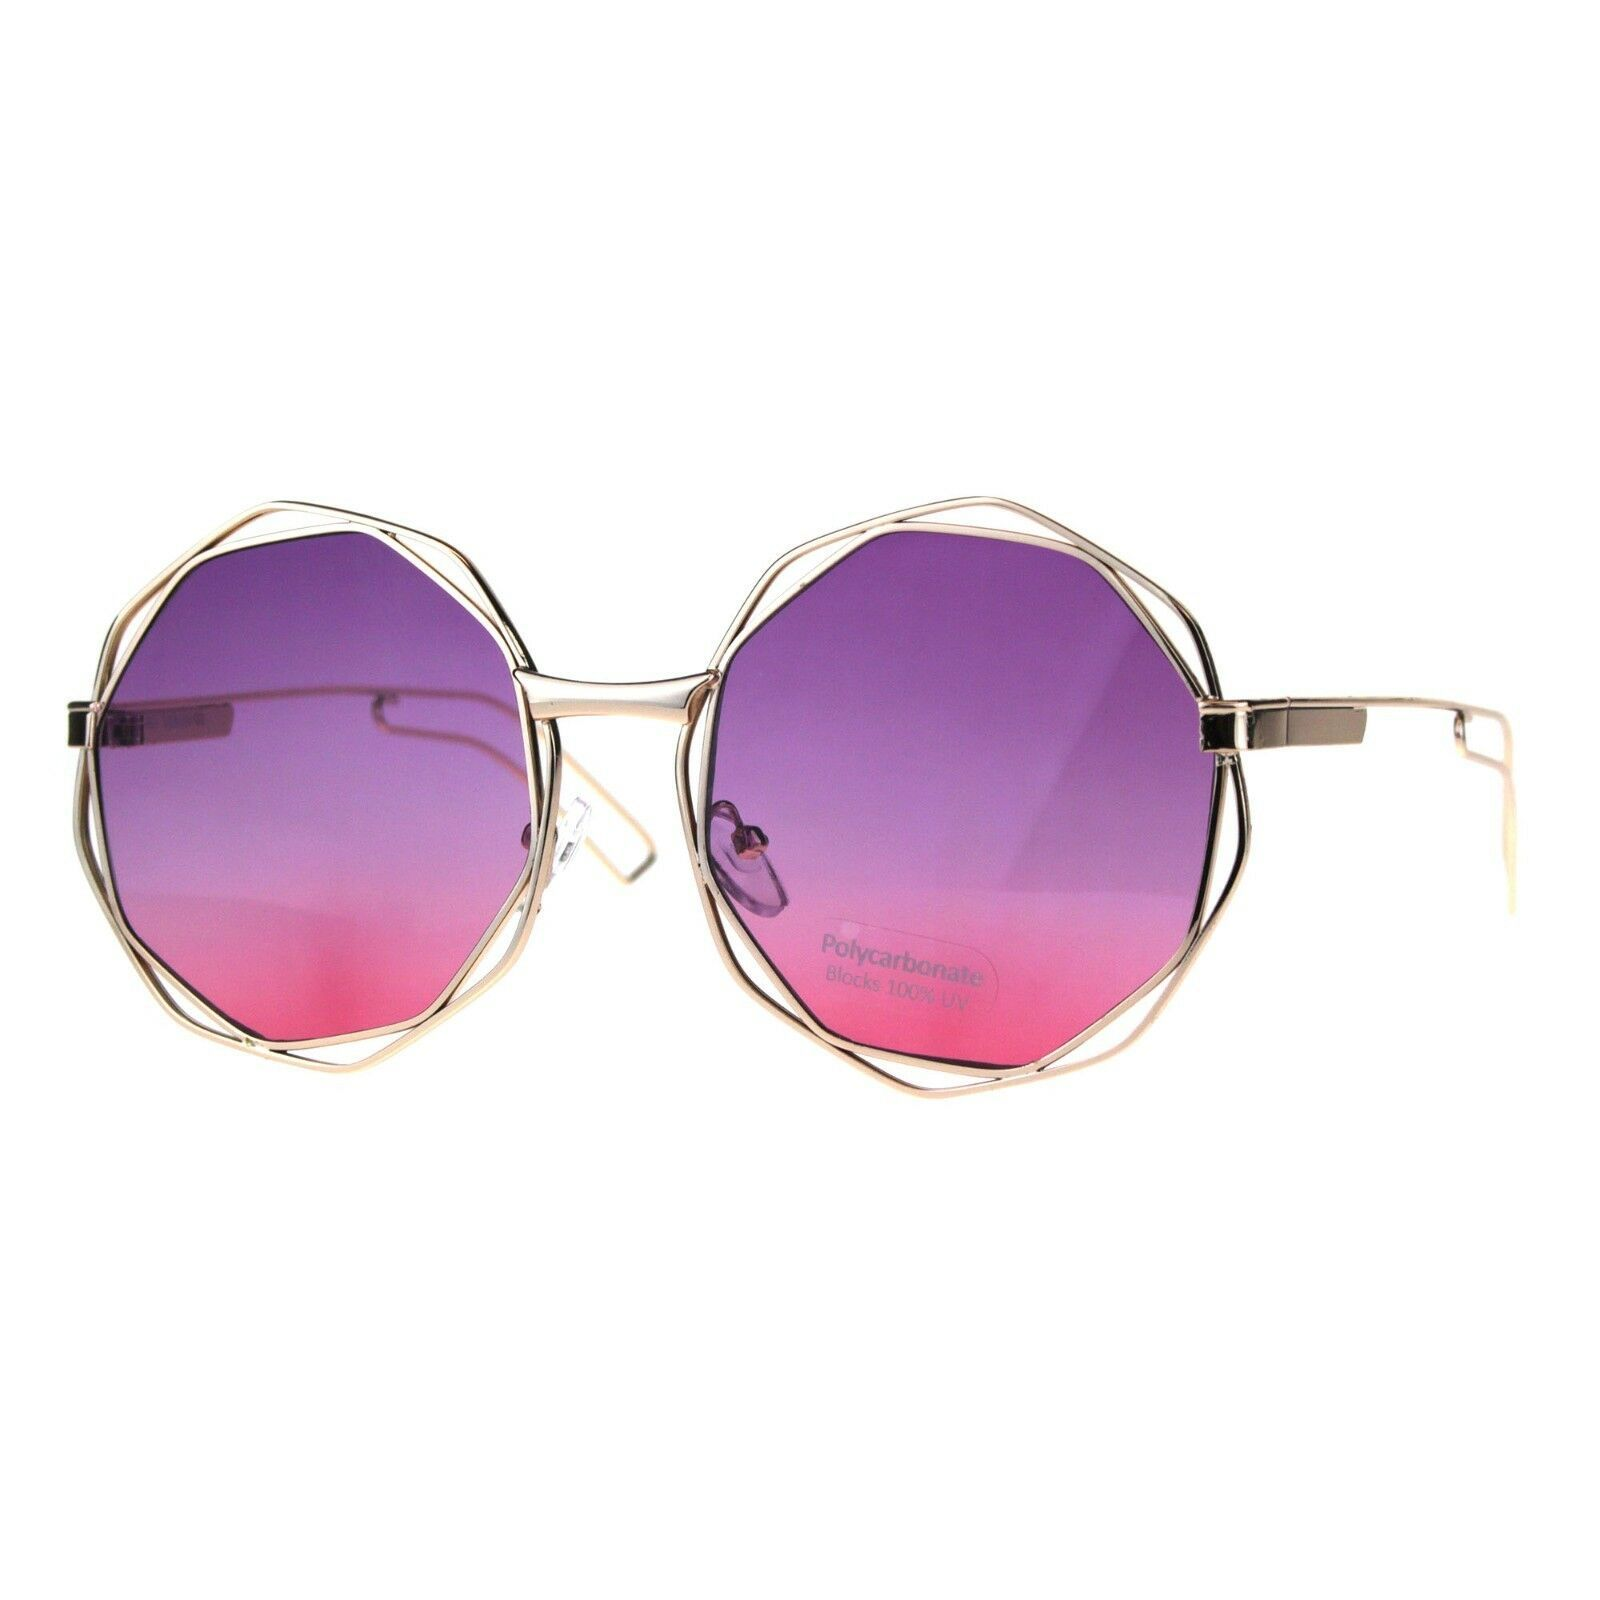 Womens Fashion Sunglasses Gold Angled Round Double Frame Ombre Color Lens